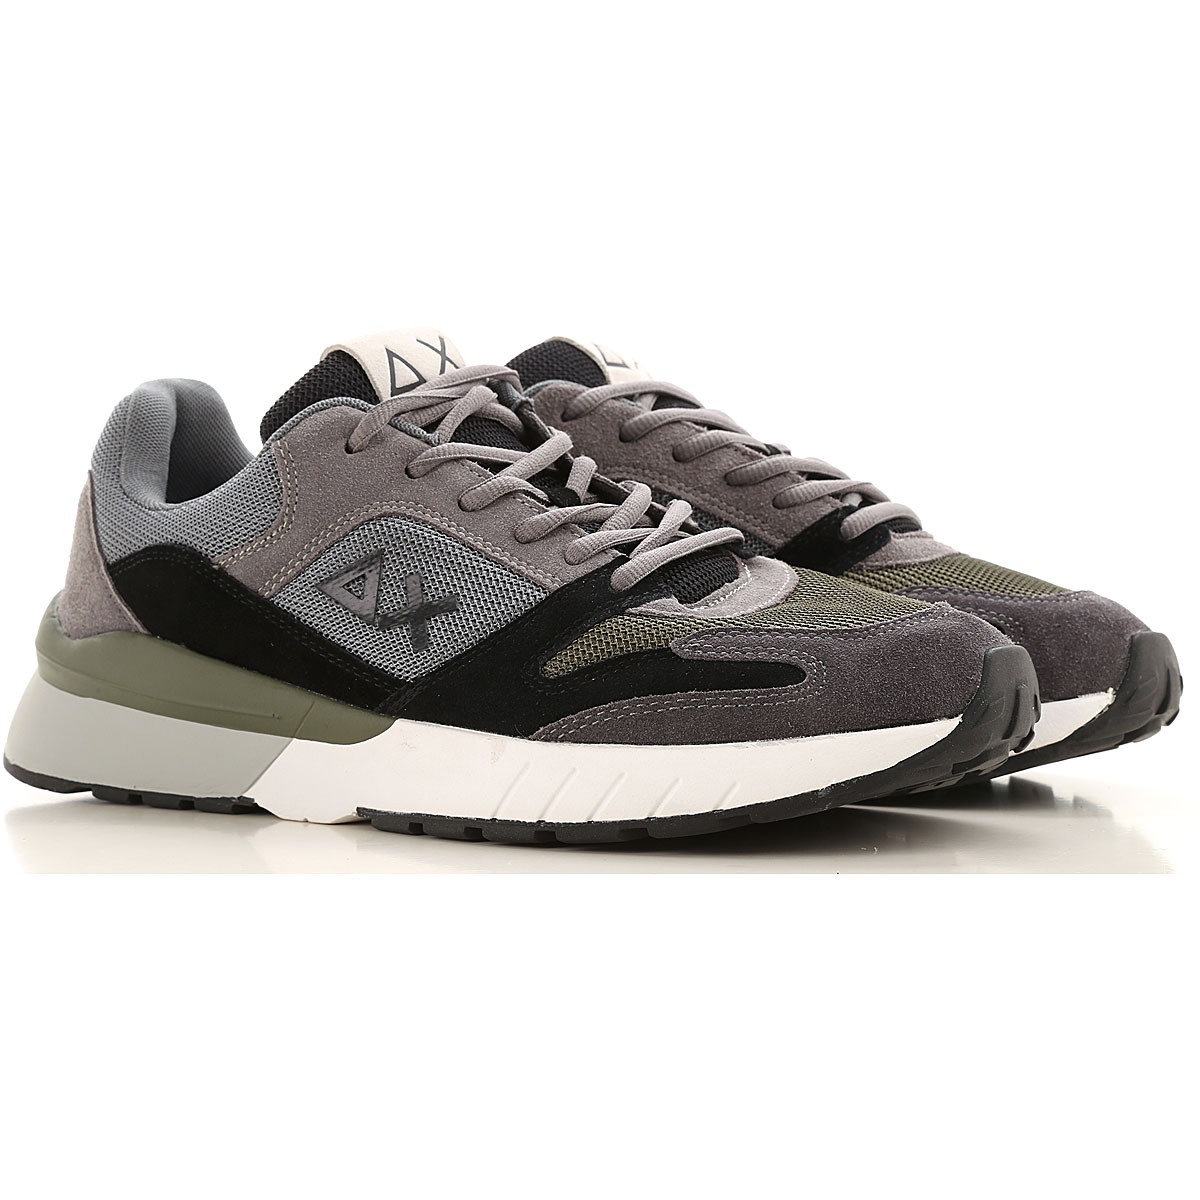 Sun68 Sneakers for Men On Sale, Grey, Textile, 2019, 10.5 11.5 12 7.5 8